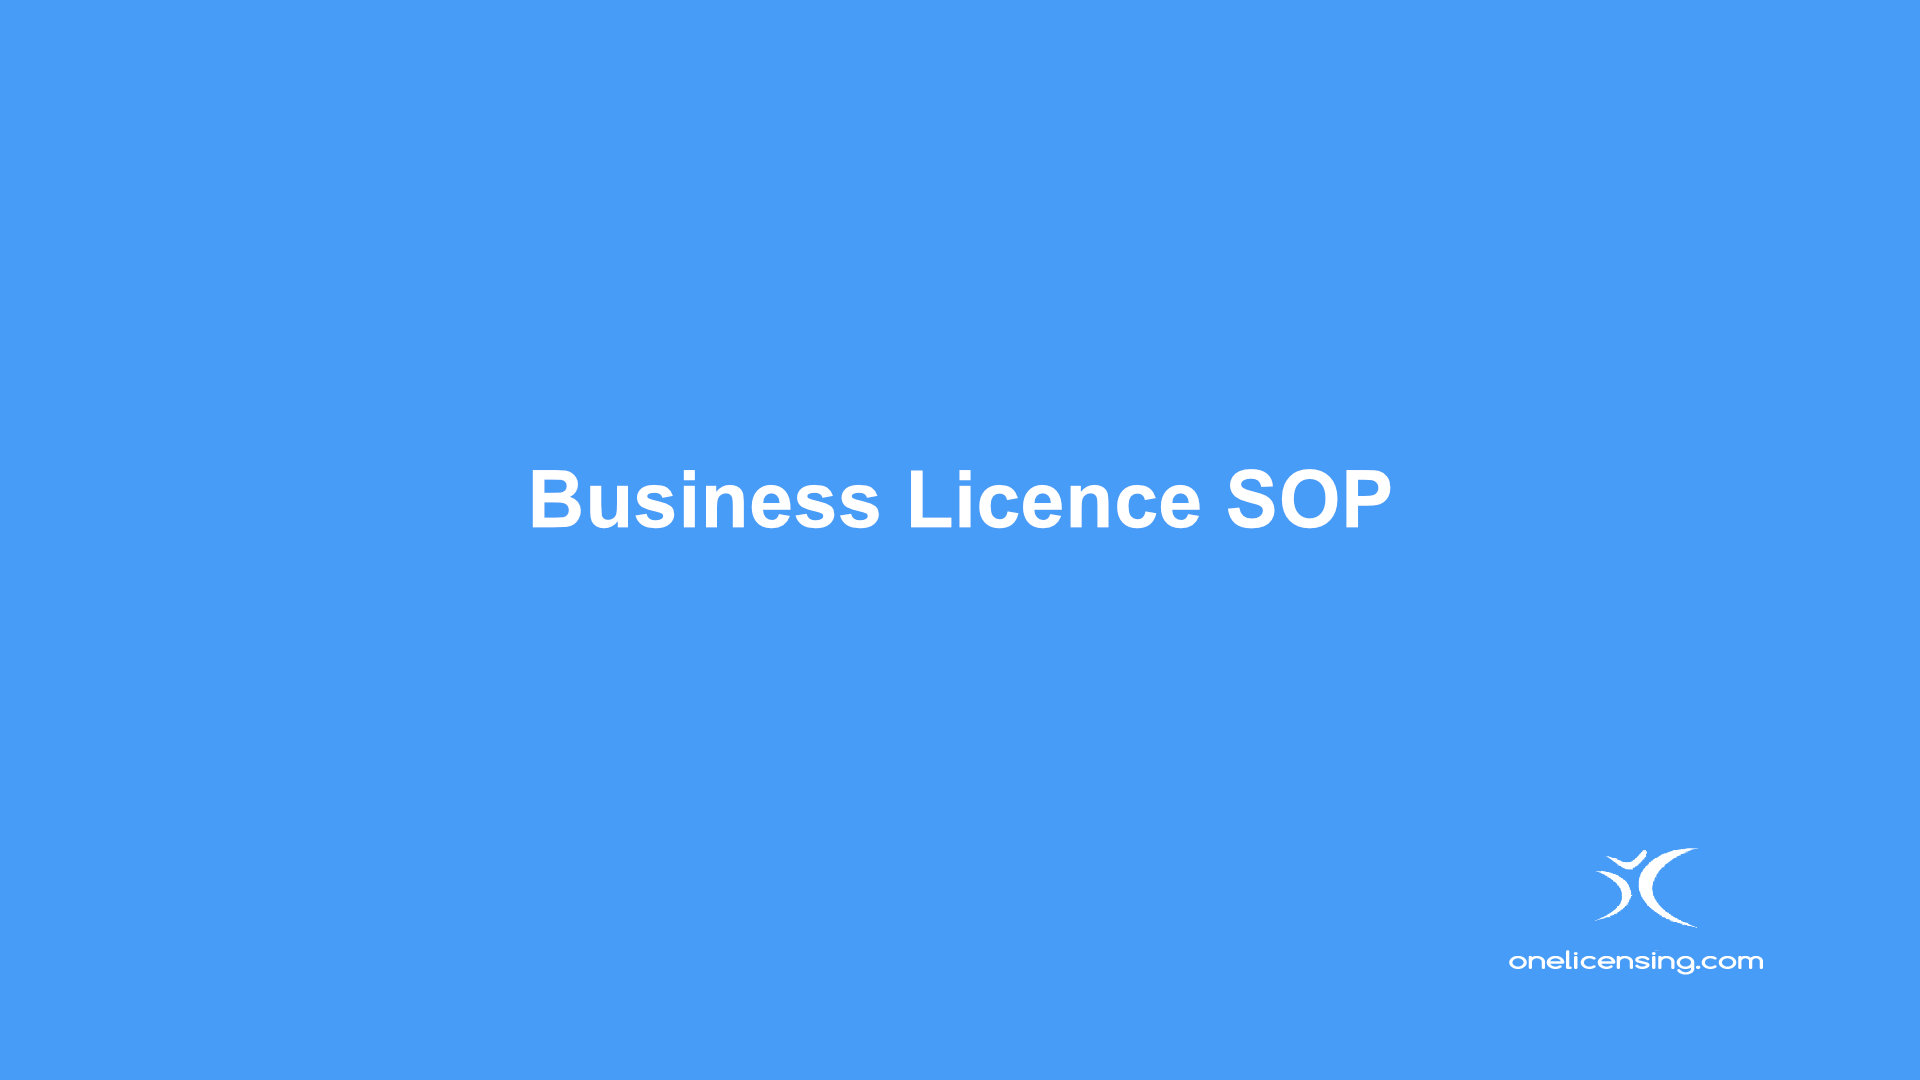 Business License SOP